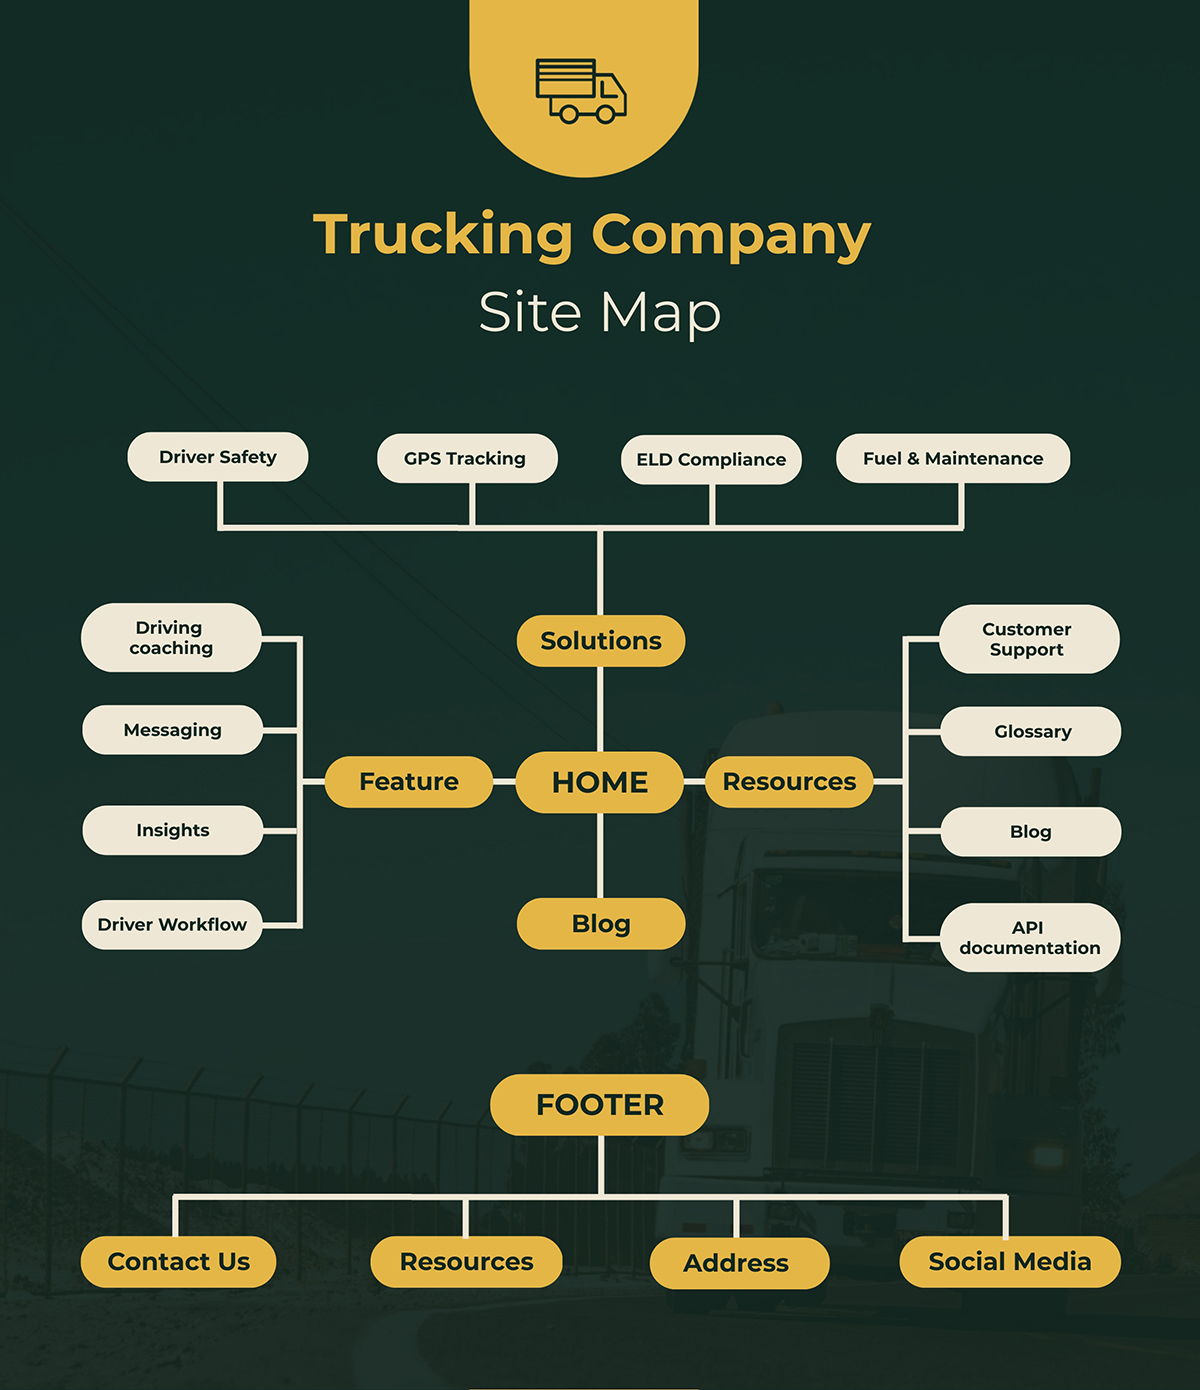 A truck company site map template available in Visme.